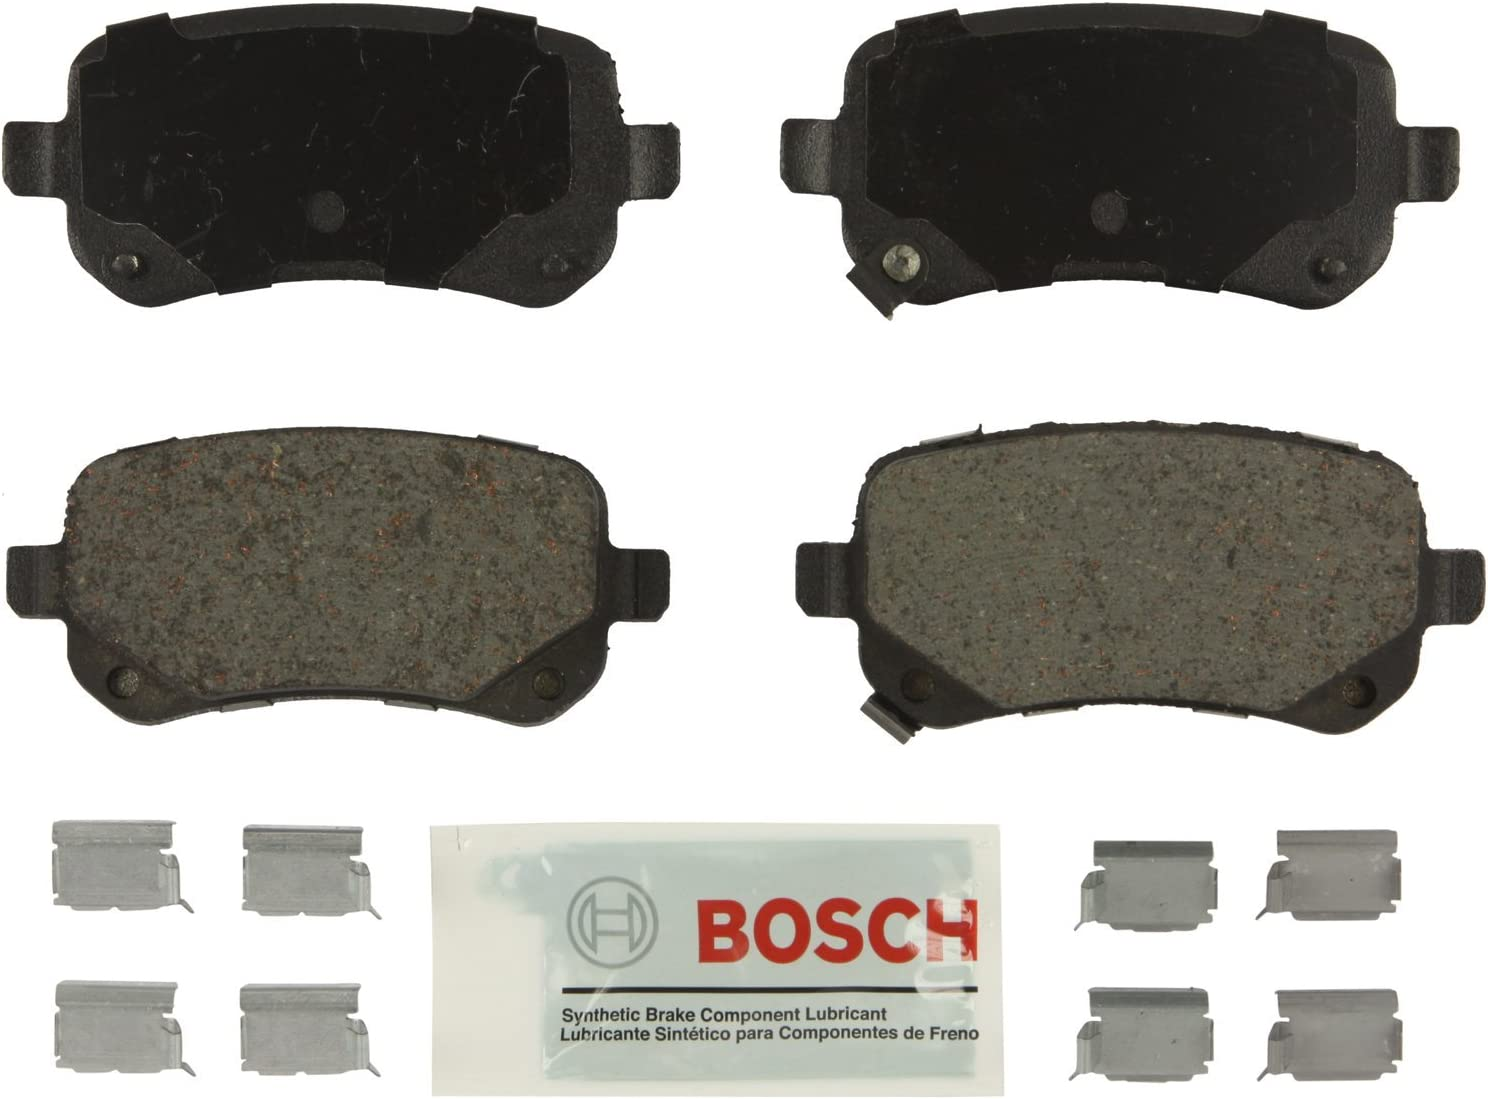 Bosch BE1326H Blue Disc Brake Pad Set with Hardware for Select Chrysler, Dodge, Ram, and Volkswagen Vehicles - REAR